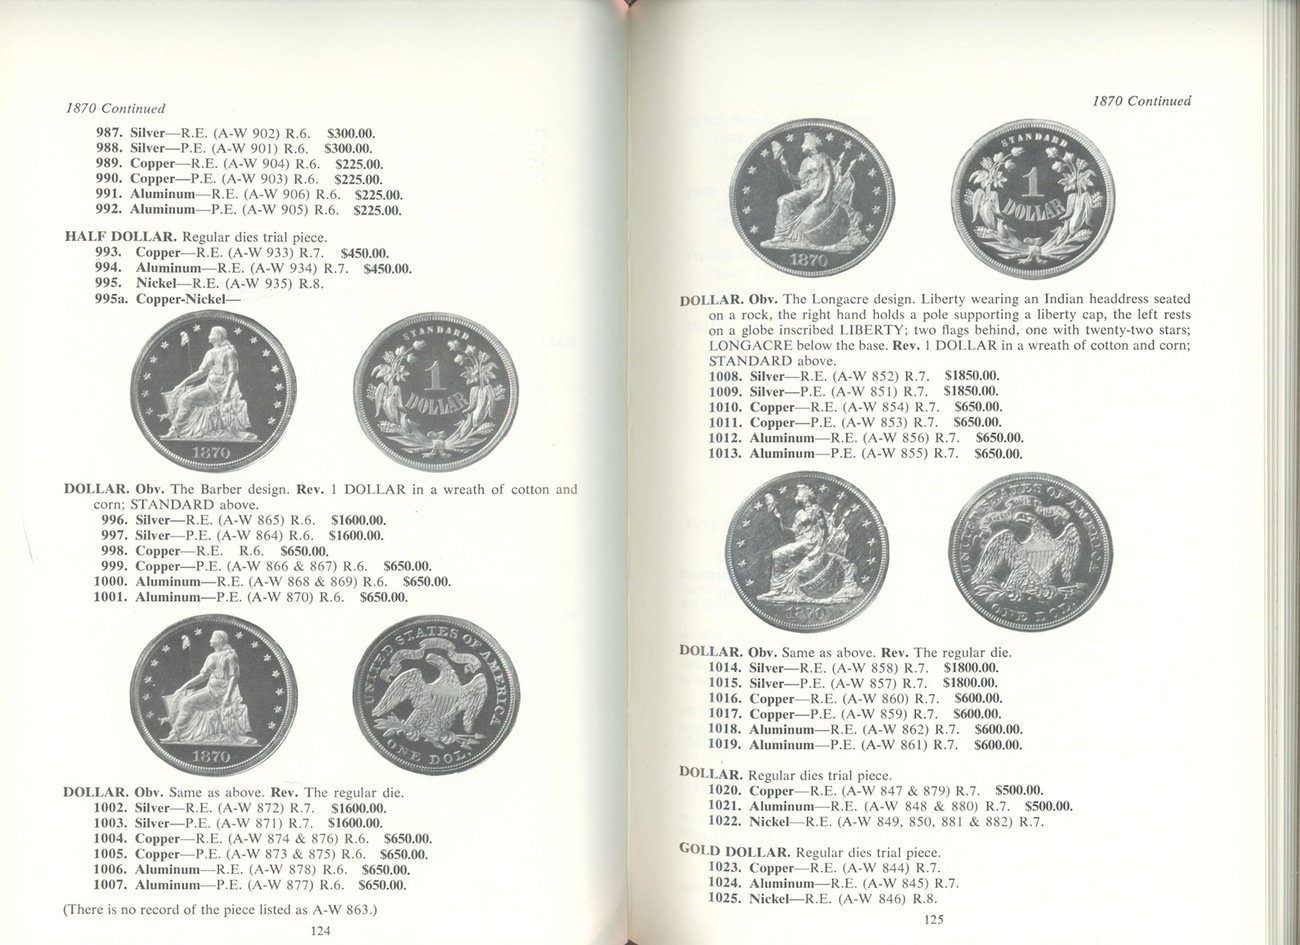 US Pattern Experimental Trial Pieces Judd book coin collecting value guide